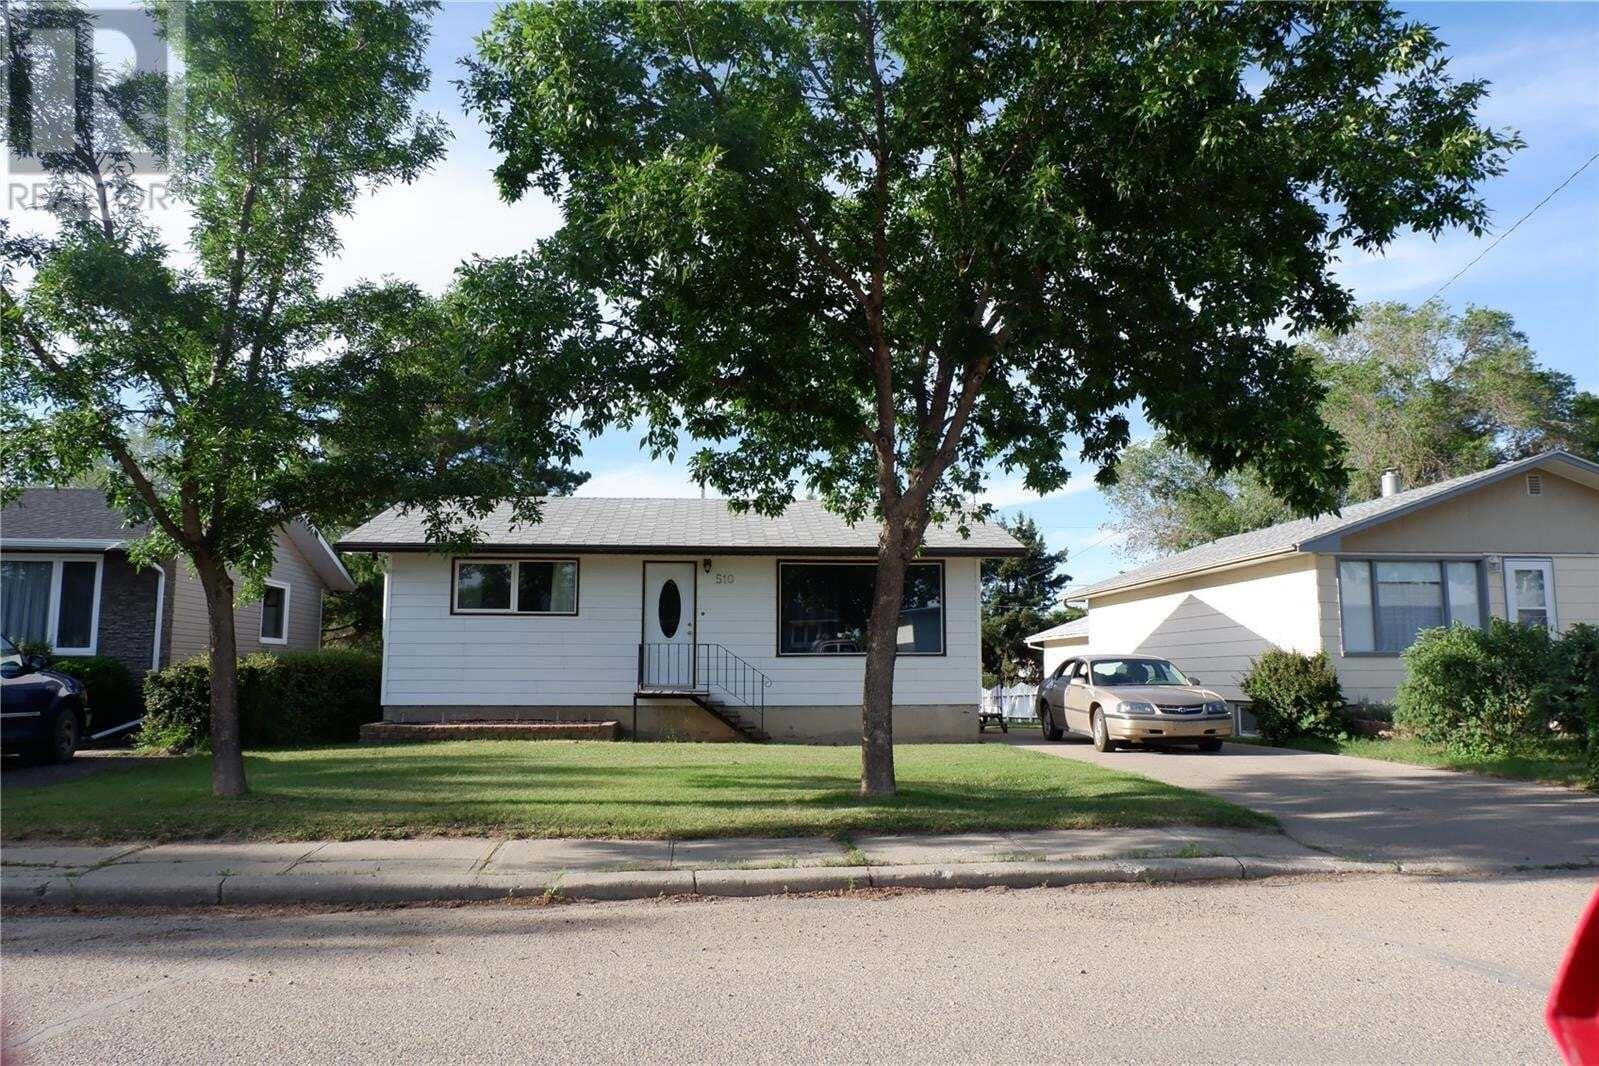 House for sale at 510 6th Ave W Assiniboia Saskatchewan - MLS: SK814222